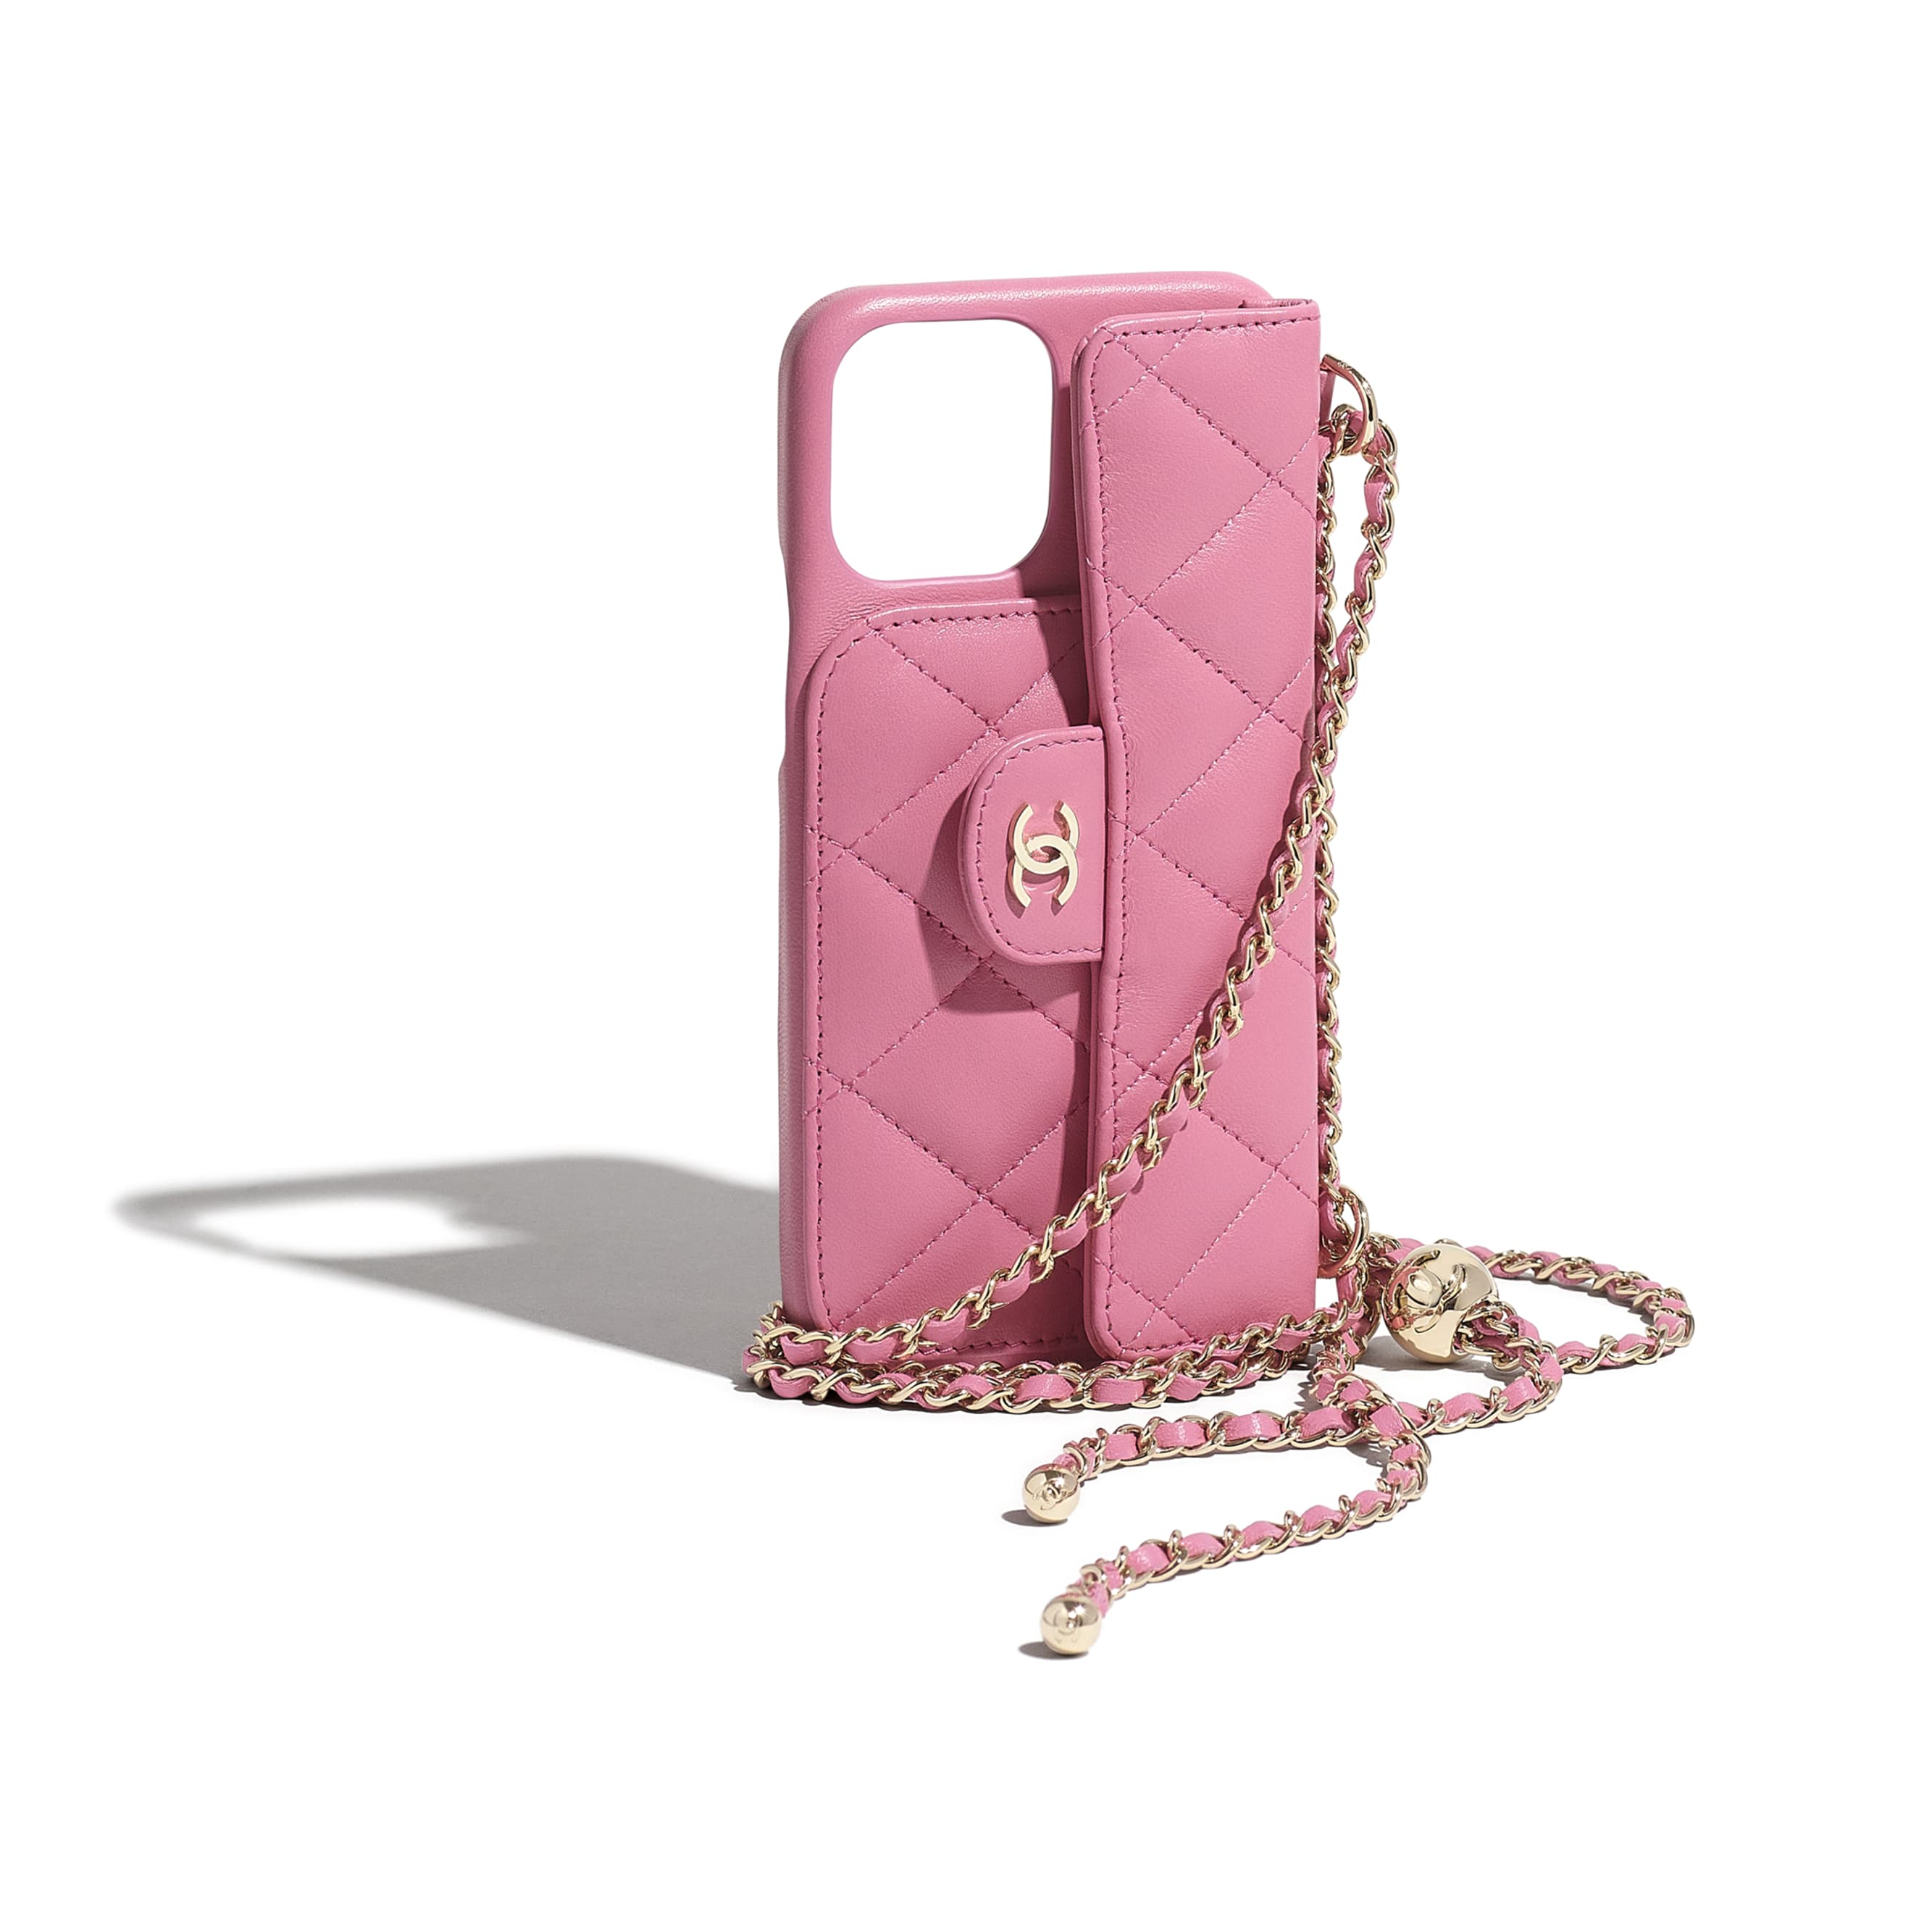 Classic Case for iPhone XII Pro MAX with chain - Pink - Lambskin - CHANEL - Extra view - see standard sized version